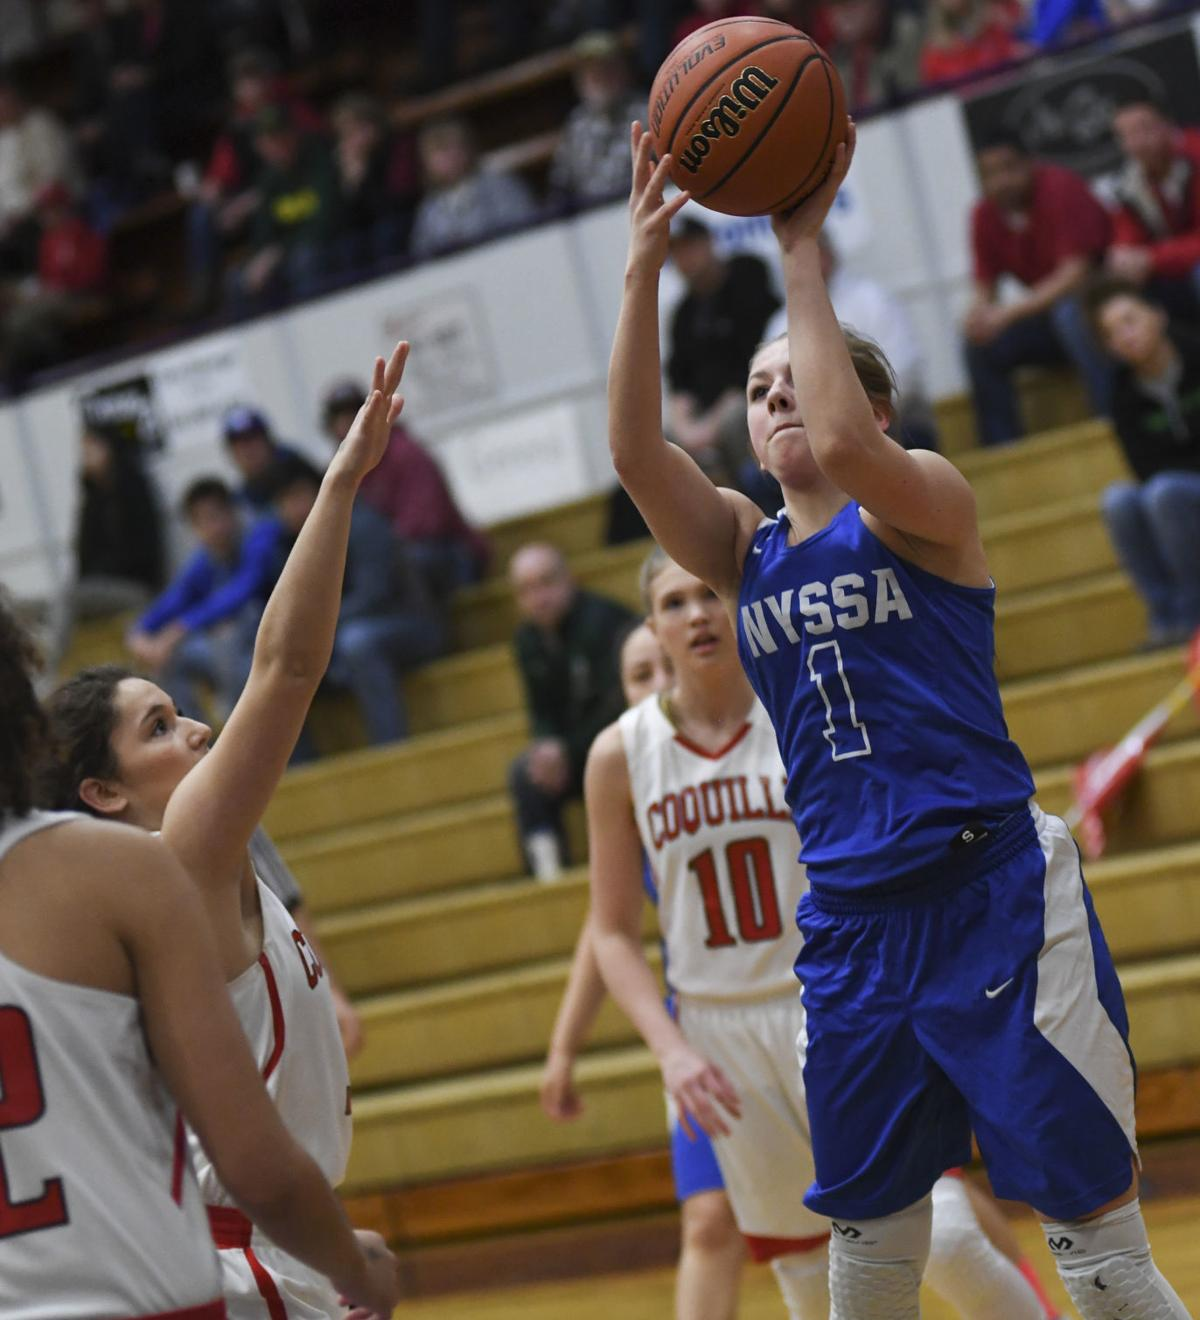 nyssa girls Membership is open to secondary schools providing interschool athletic activities for boys and girls in grades 7-12   home about nysphsaa general information.